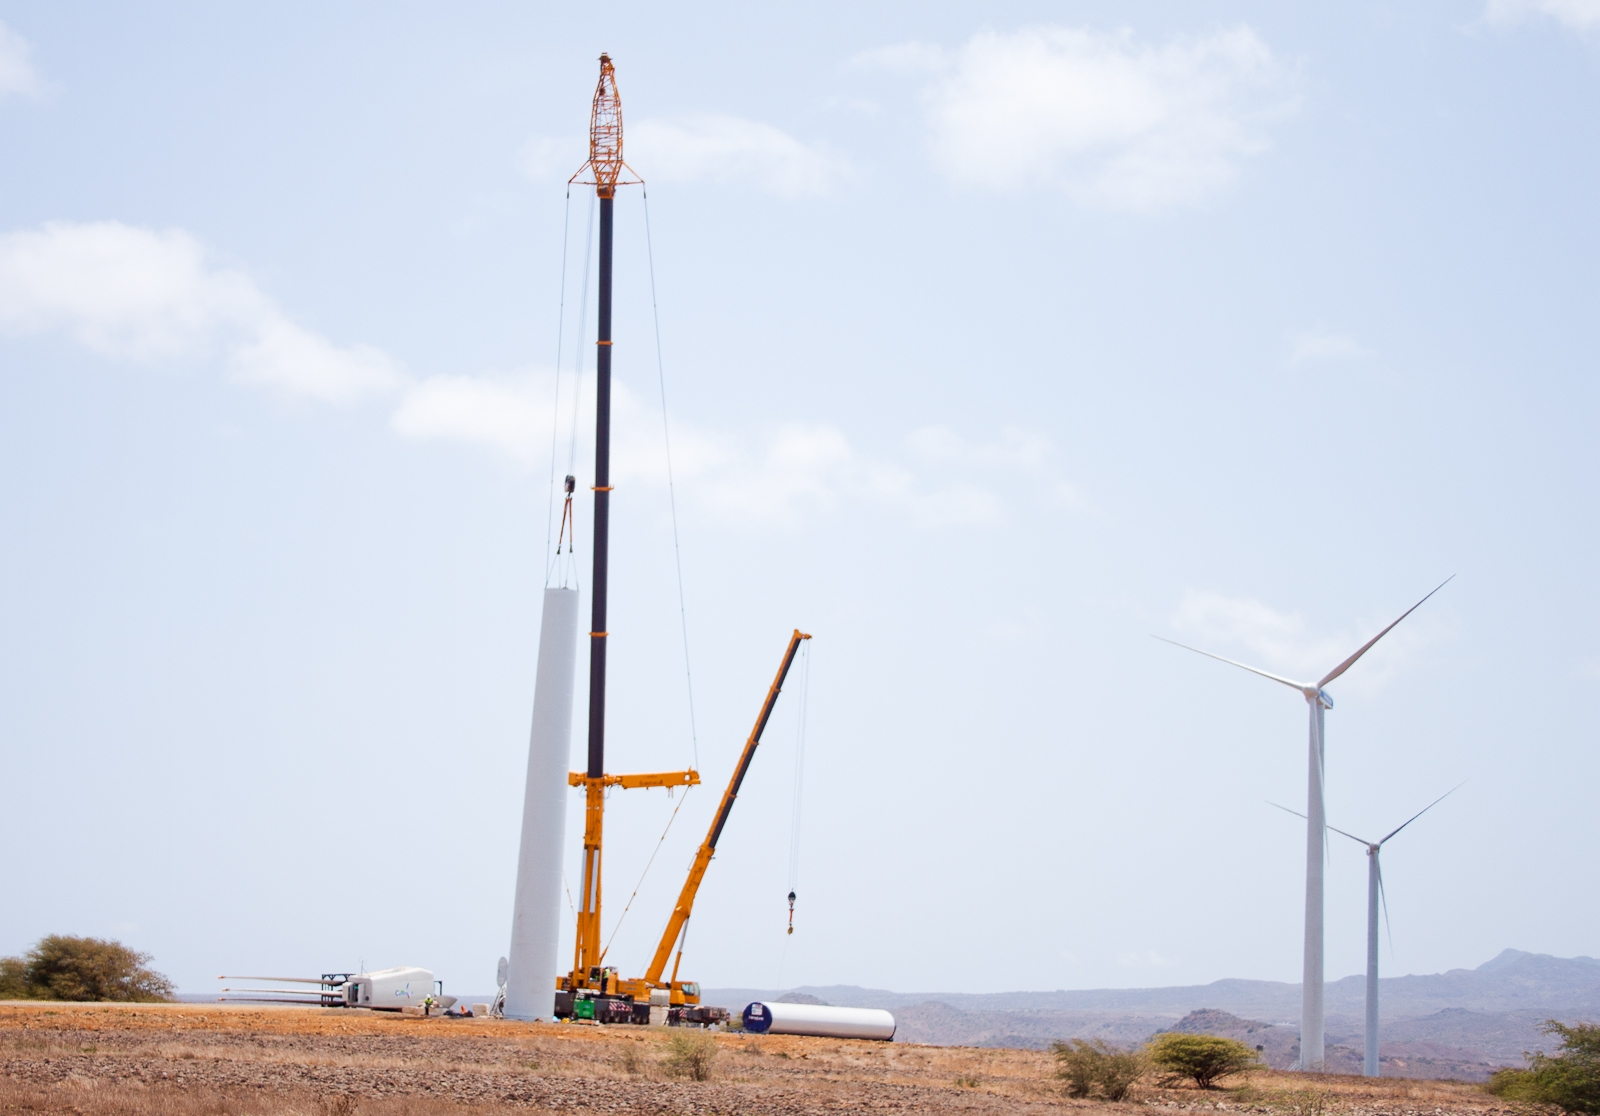 Fully operational by the end of the year, the four onshore wind farms will add over 28 megawatts  of electricity to the local energy supply and ease Cape Verde's reliance on imported fossil fuels. Copyright: InfraCo.